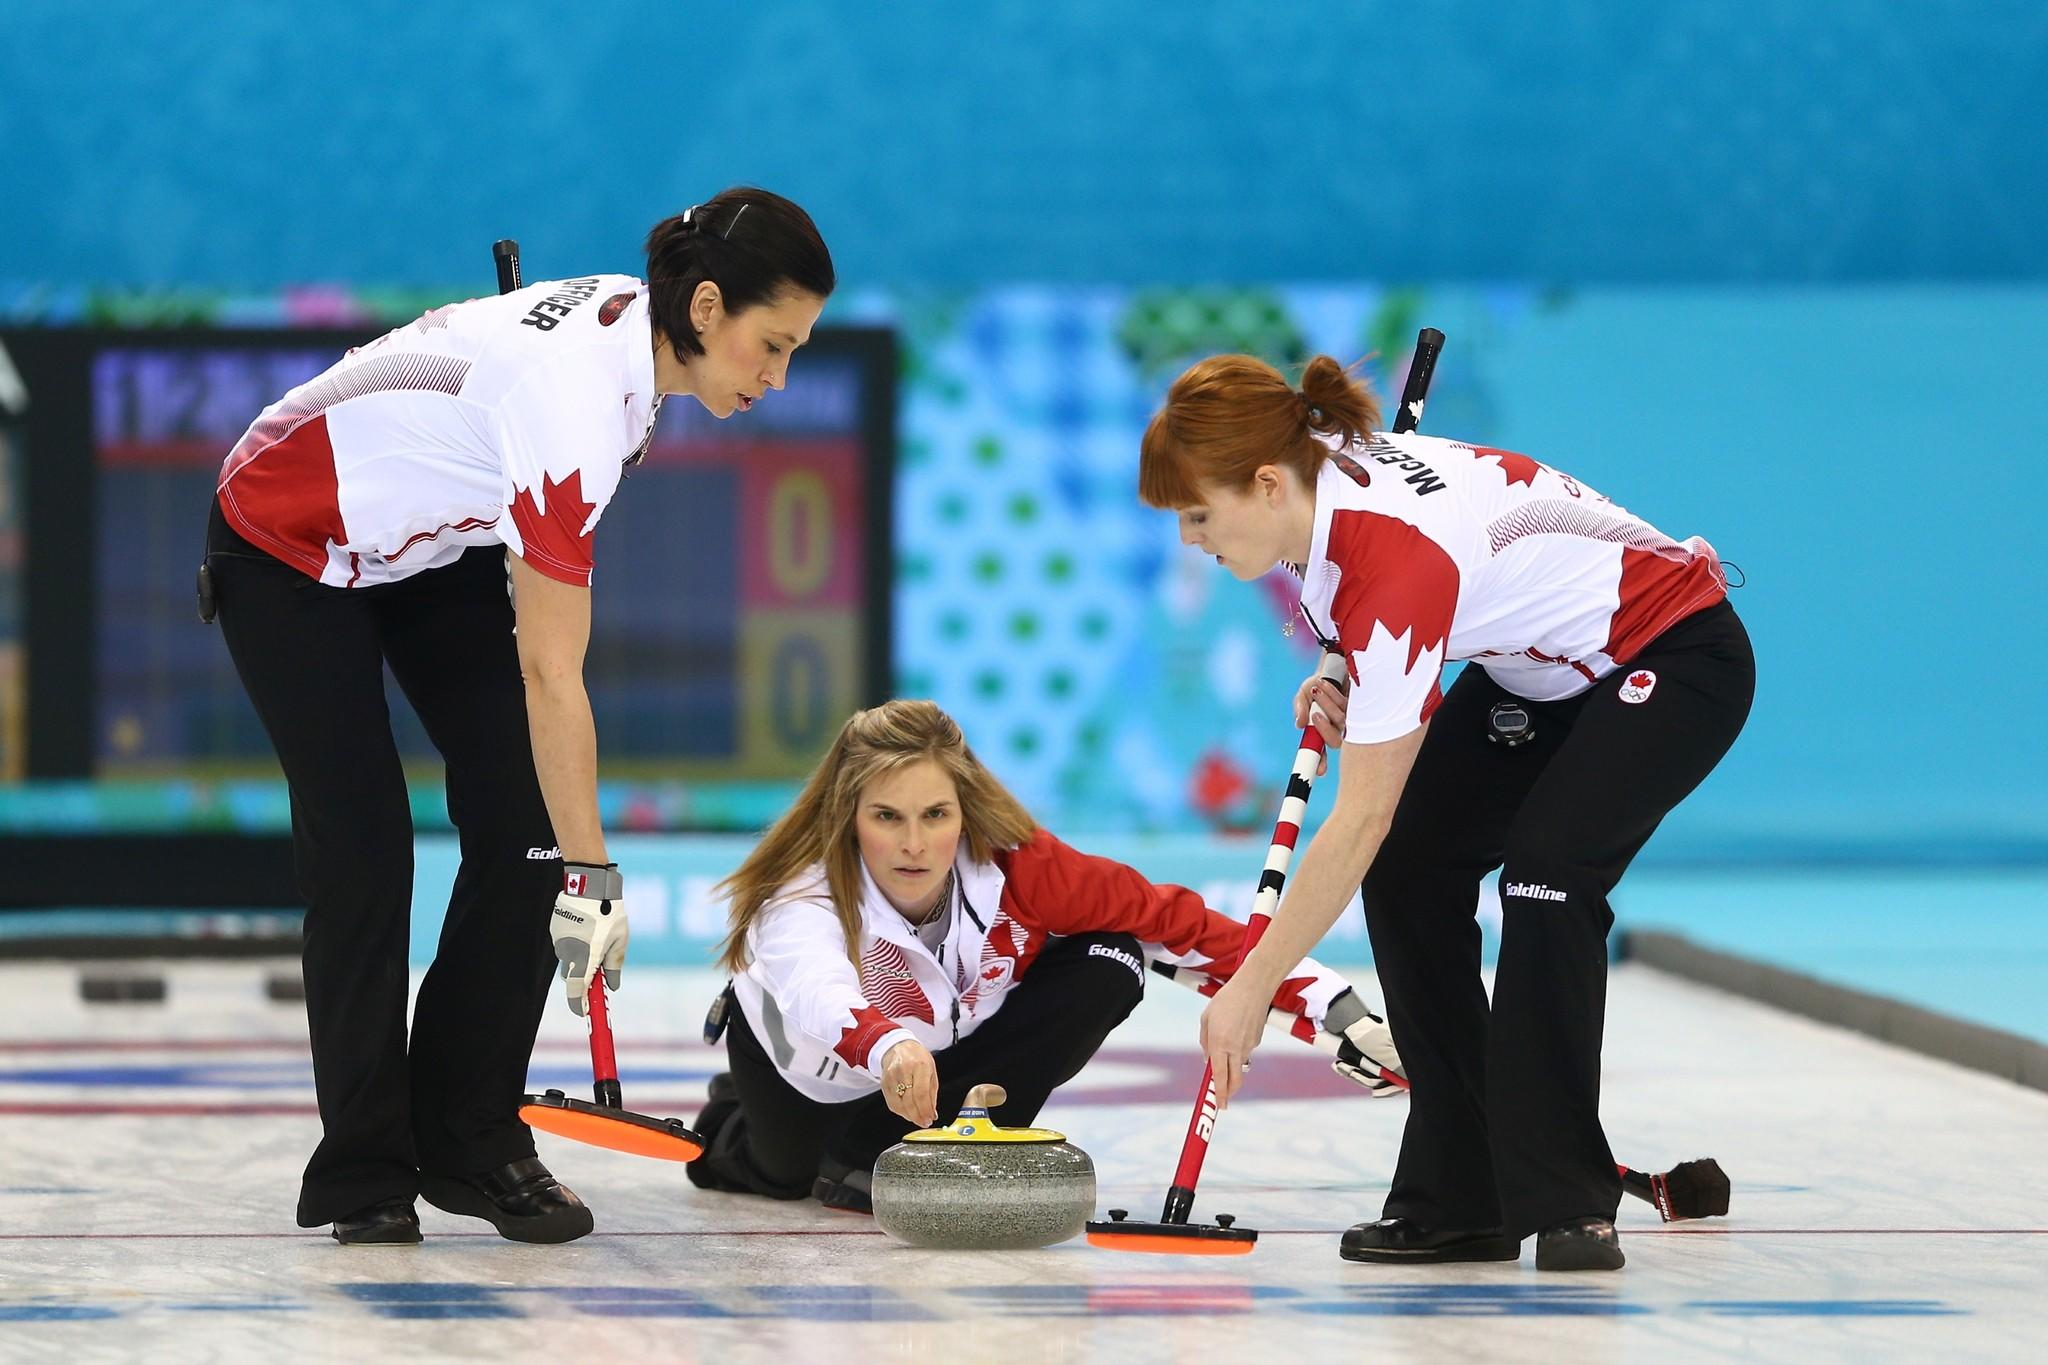 Jennifer Jones of Canada releases the stone during the women's semifinal match between Great Britain and Canada at Ice Cube Curling Center.